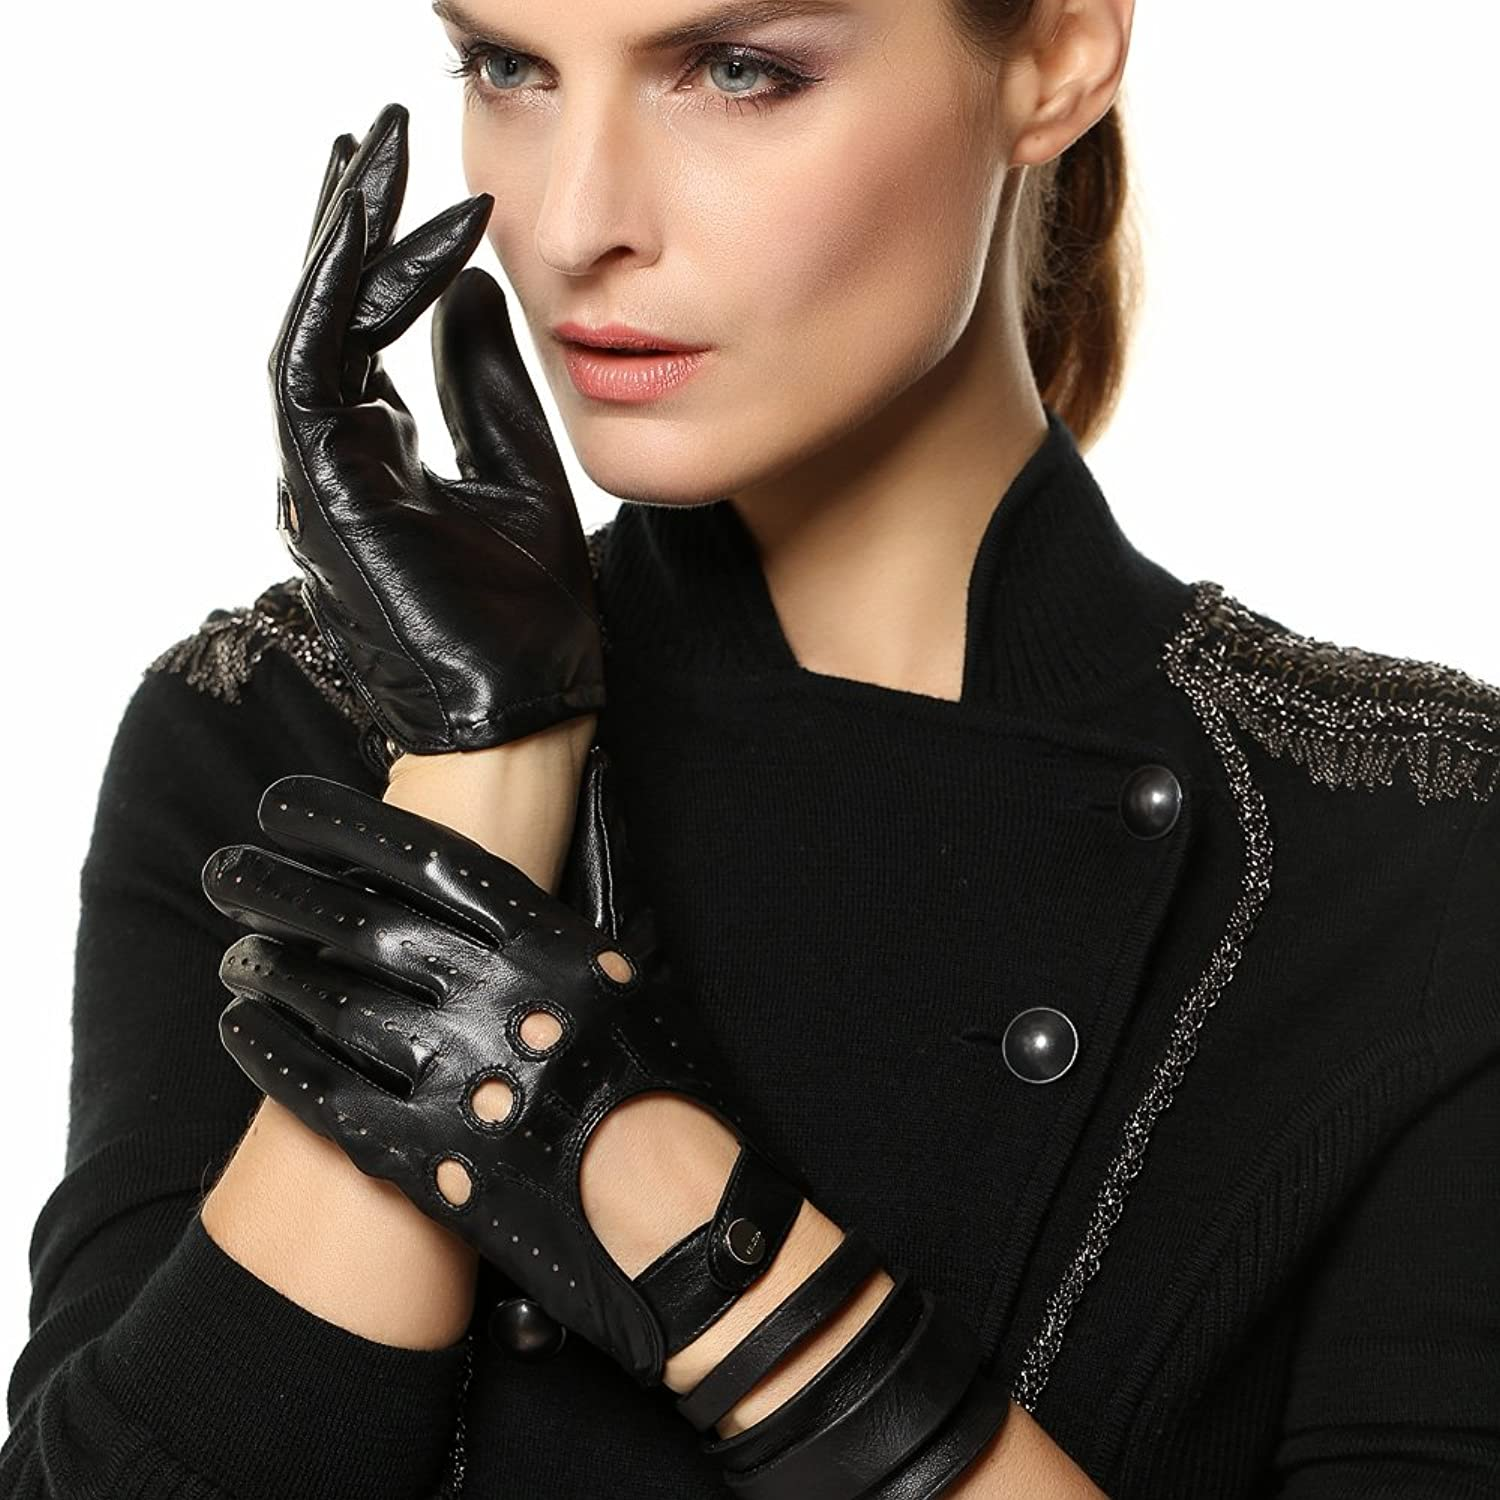 Womens leather gloves burgundy - Elma Tradional Women S Italian Nappa Leather Gloves Motorcycle Driving Open Back 6 5 Black At Amazon Women S Clothing Store